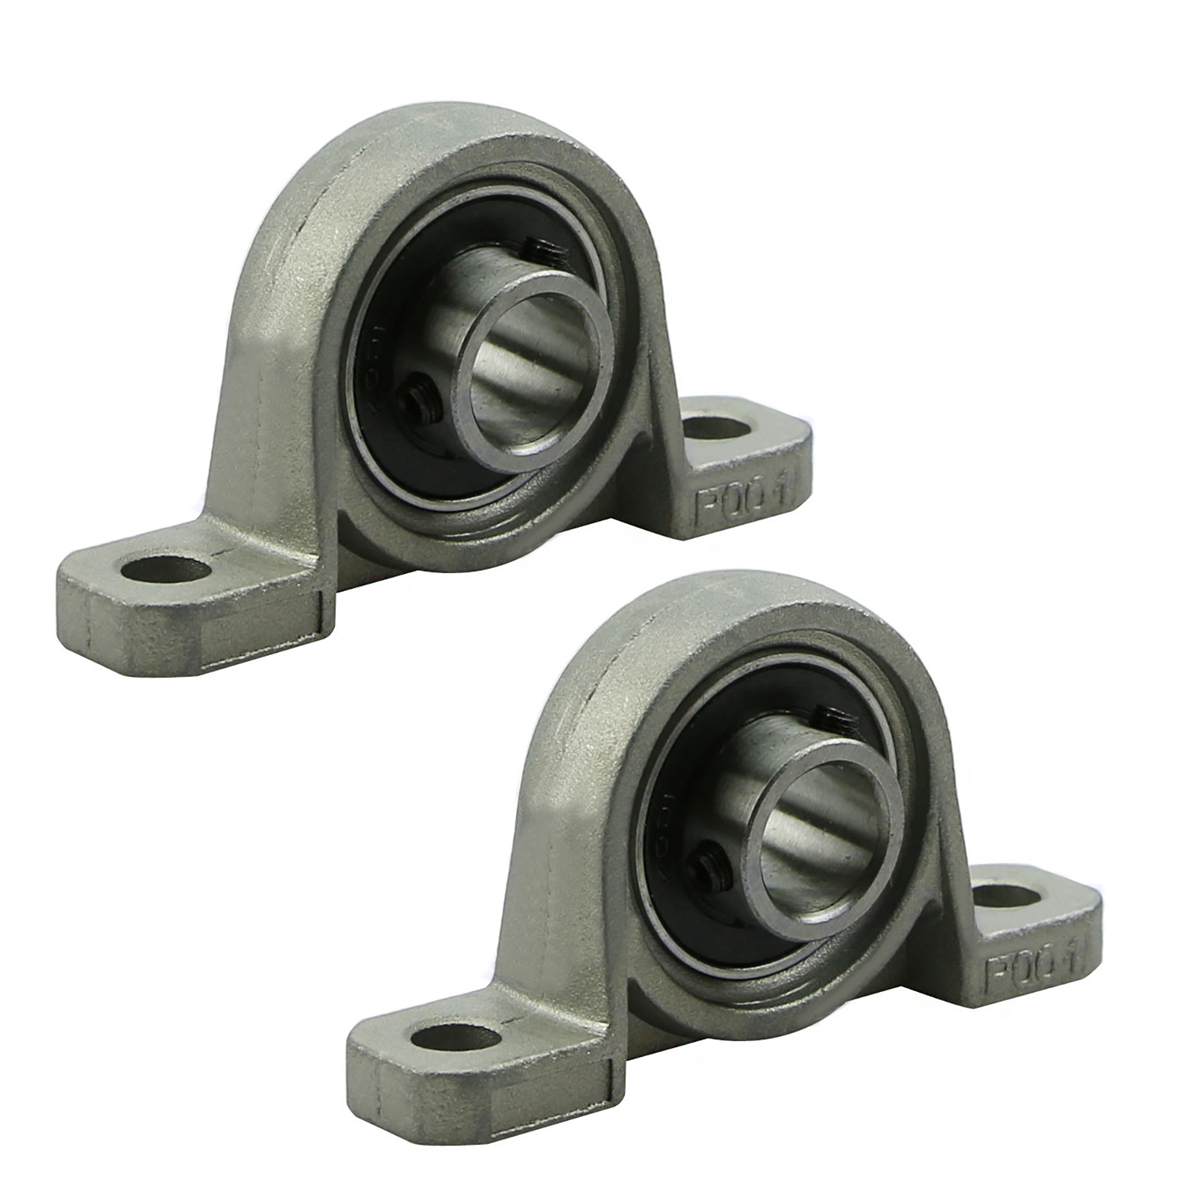 2pcs Precision KP001 Bearing Shaft 12mm Diameter Zinc Alloy Pillow Block Mounted Support Ball Bearings Housing Roller Mayitr 2pcs precision kp001 bearing shaft 12mm diameter zinc alloy pillow block mounted support ball bearings housing roller mayitr